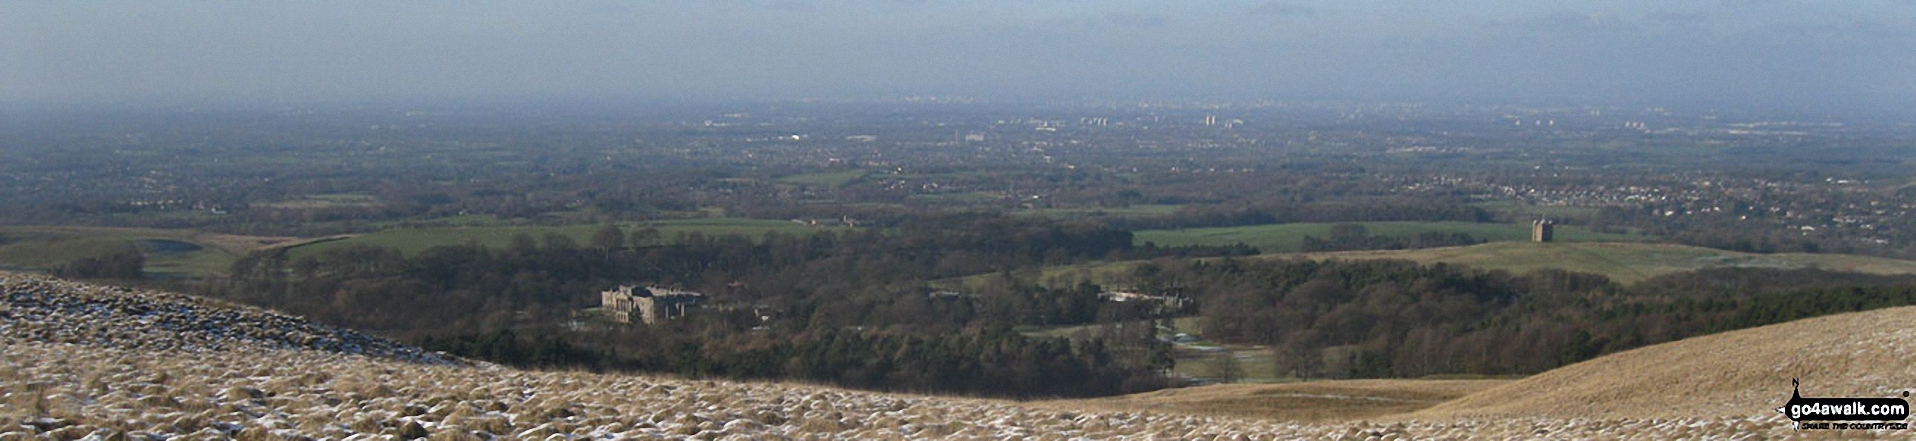 Lyme Hall (left) and The Cage (right) with Manchester and Stockport beyond from the memorial in Lyme Park Country Park just north of Bowstonegate Farm